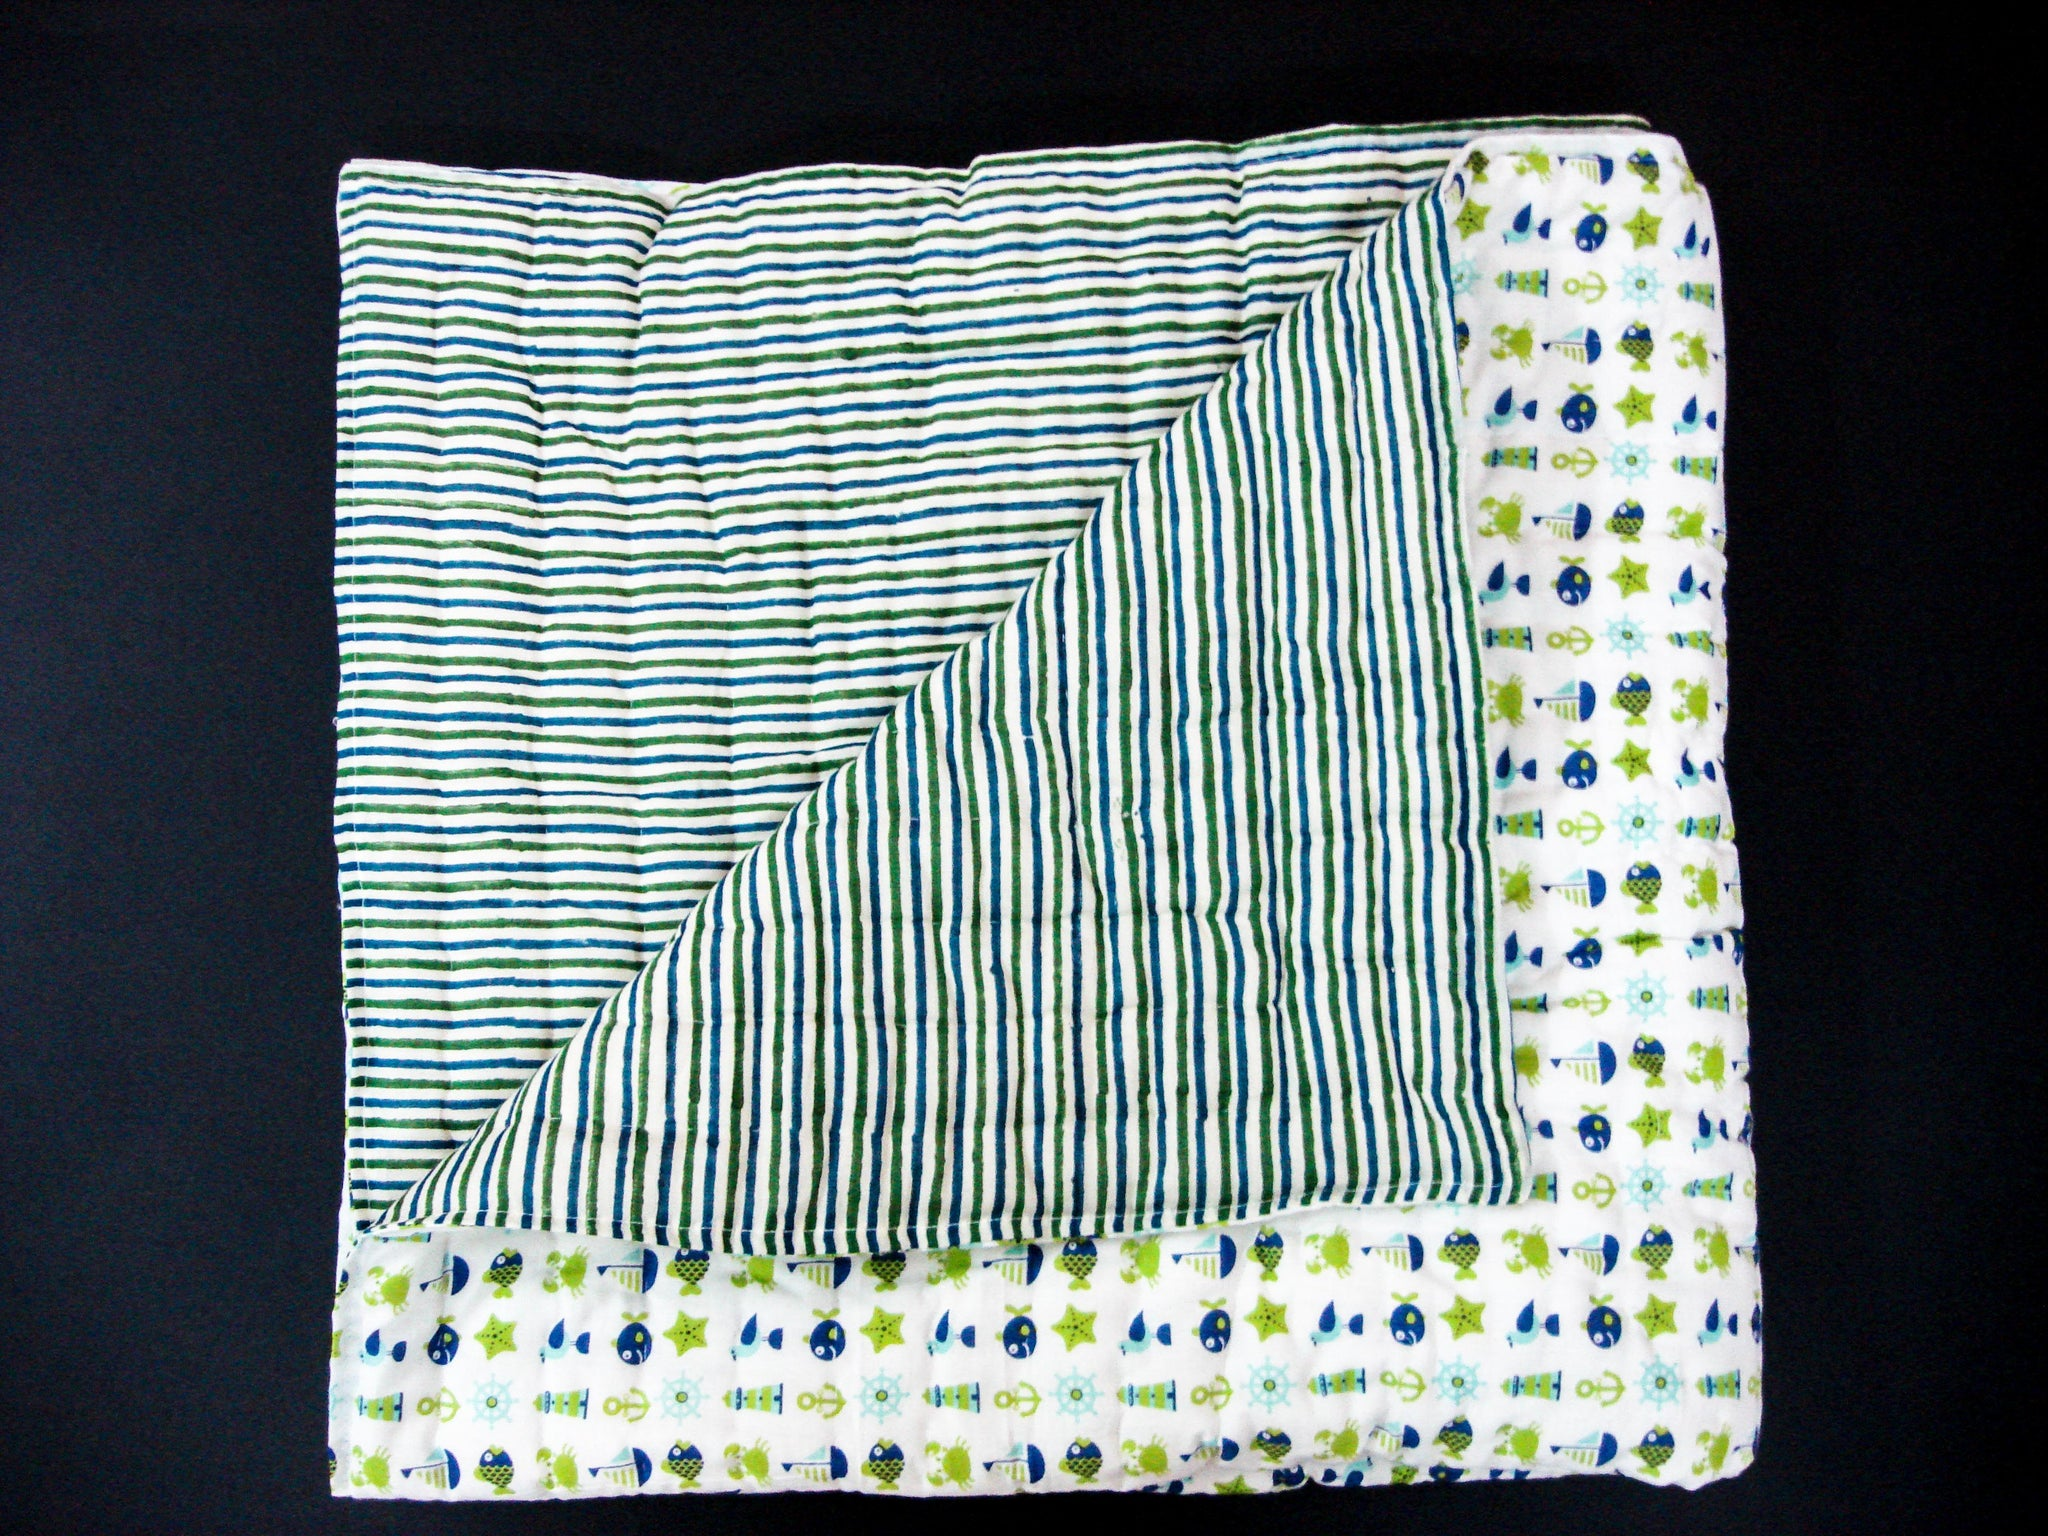 Handmade Block Printed Cotton Baby Quilt - Sailing and Fishing designs